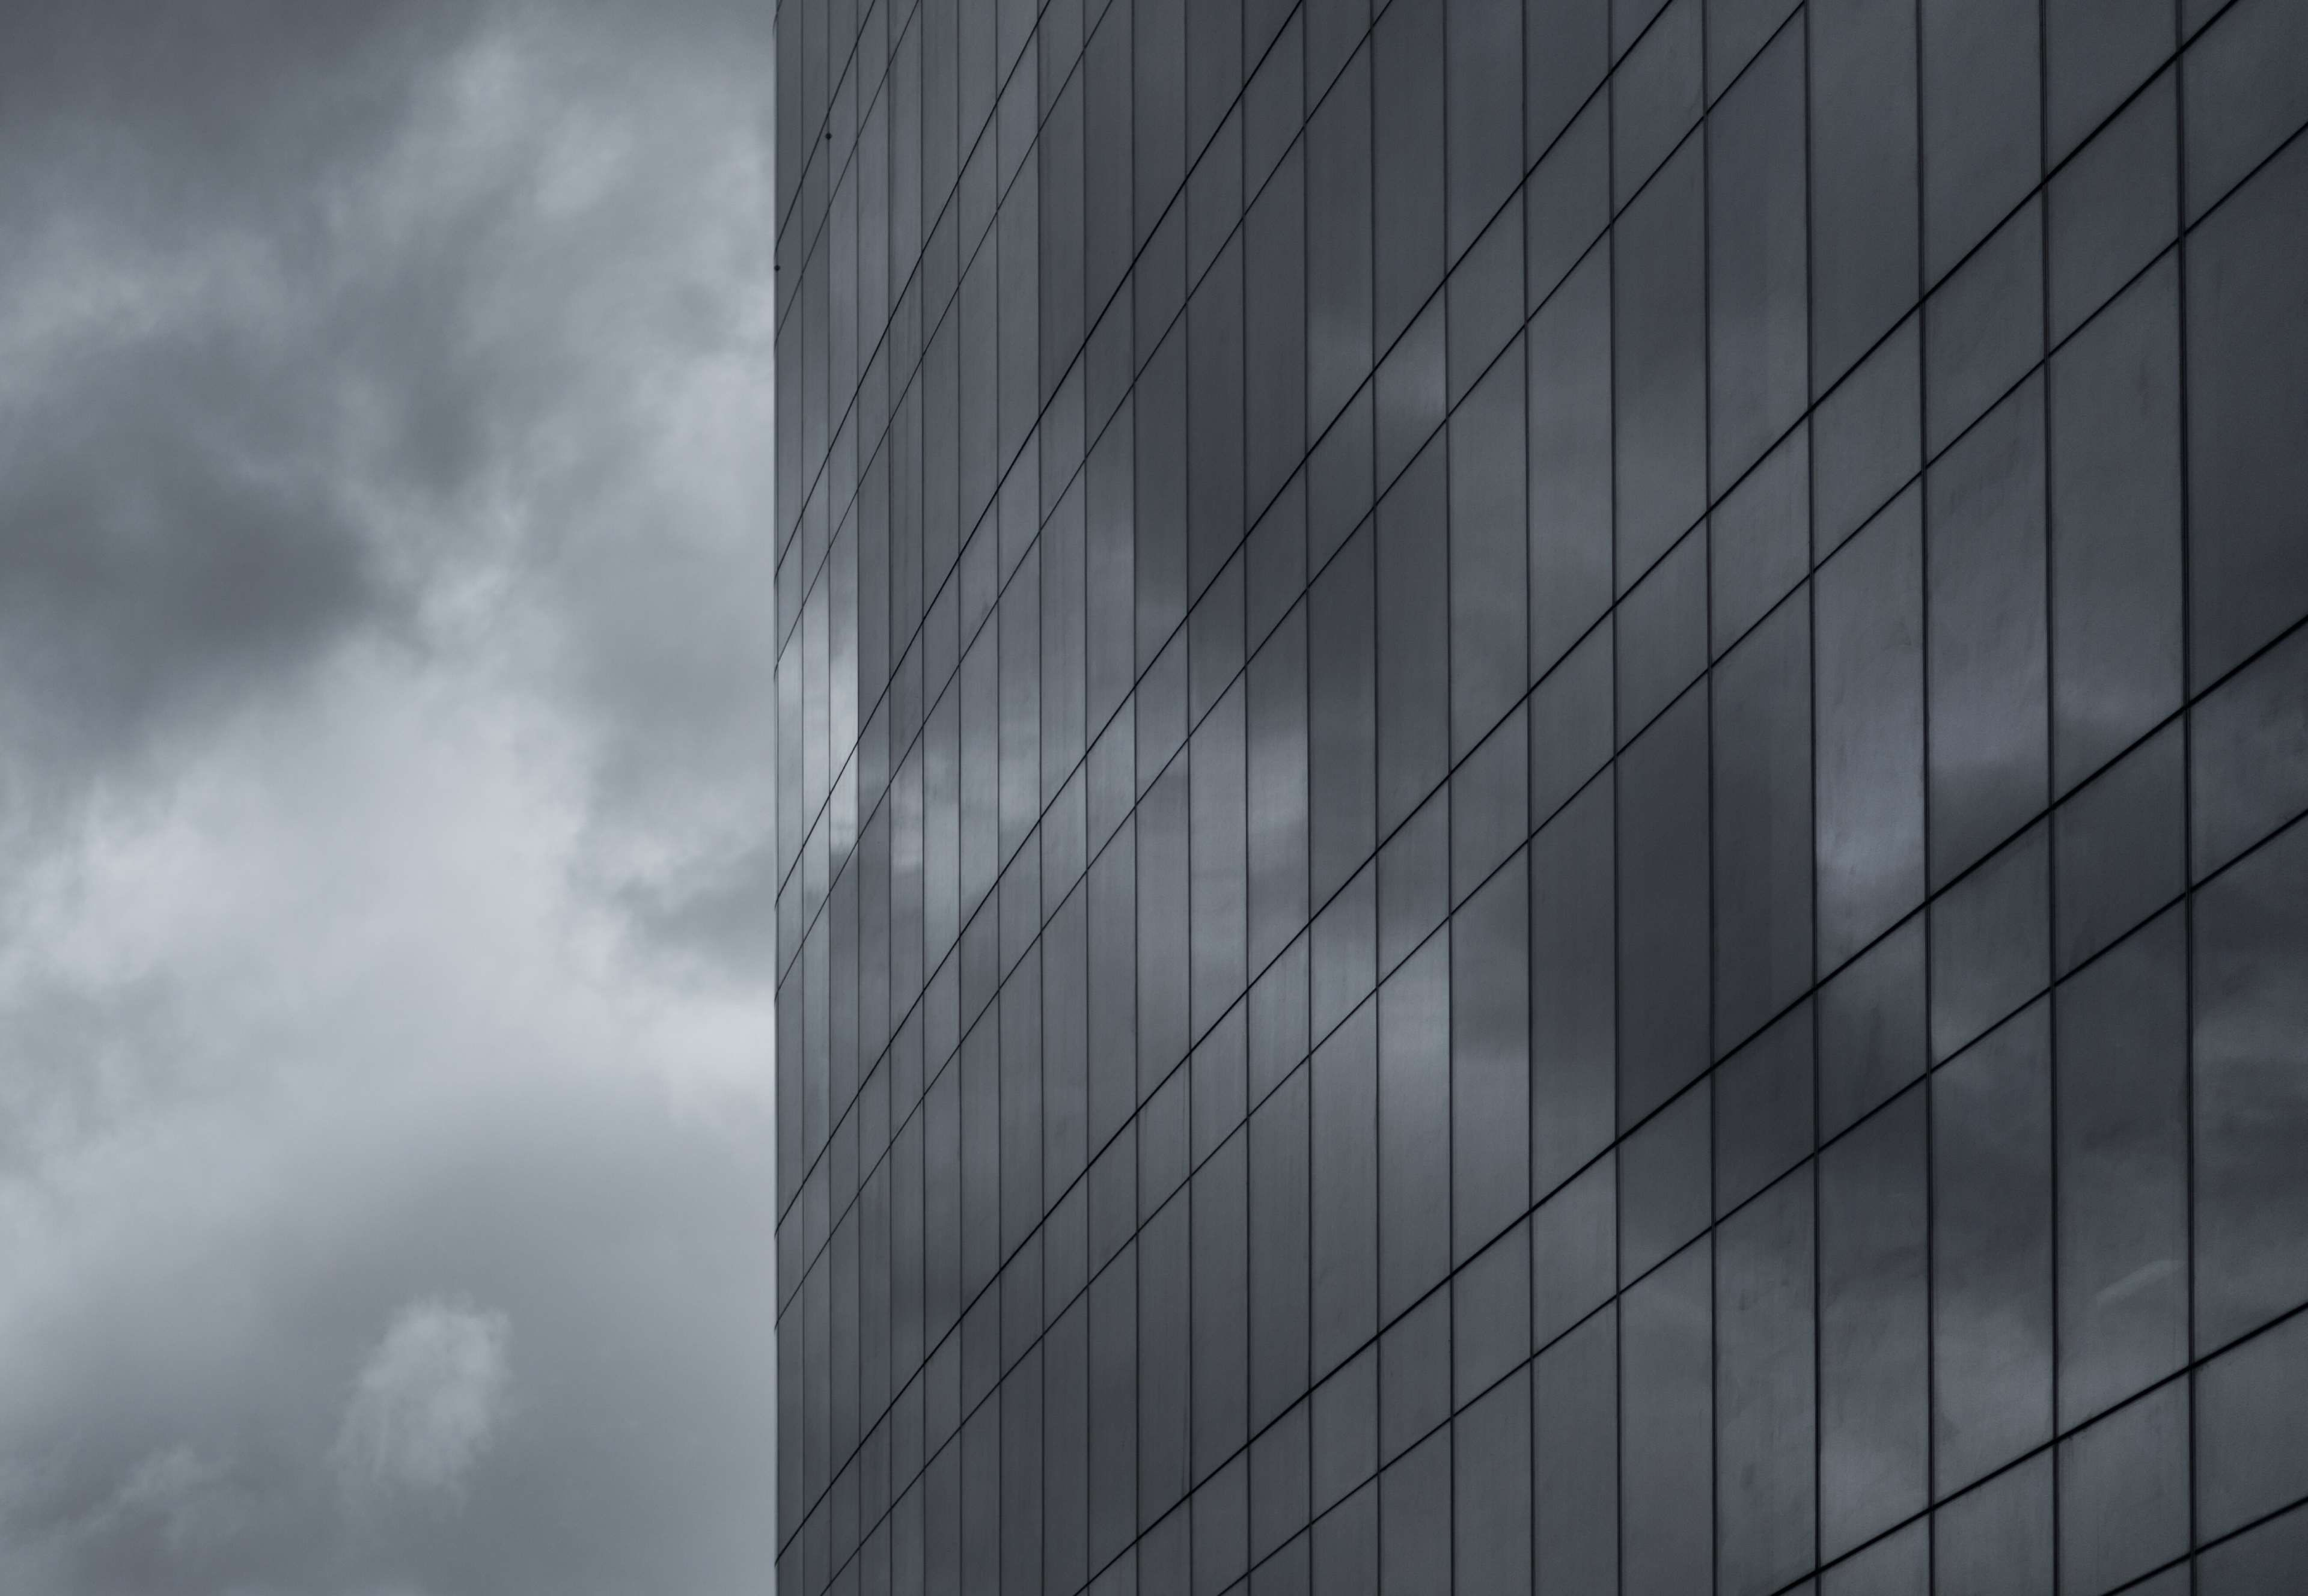 #black and white #buiding #clouds #high rises #monochrome #perspective #skyscraper #window